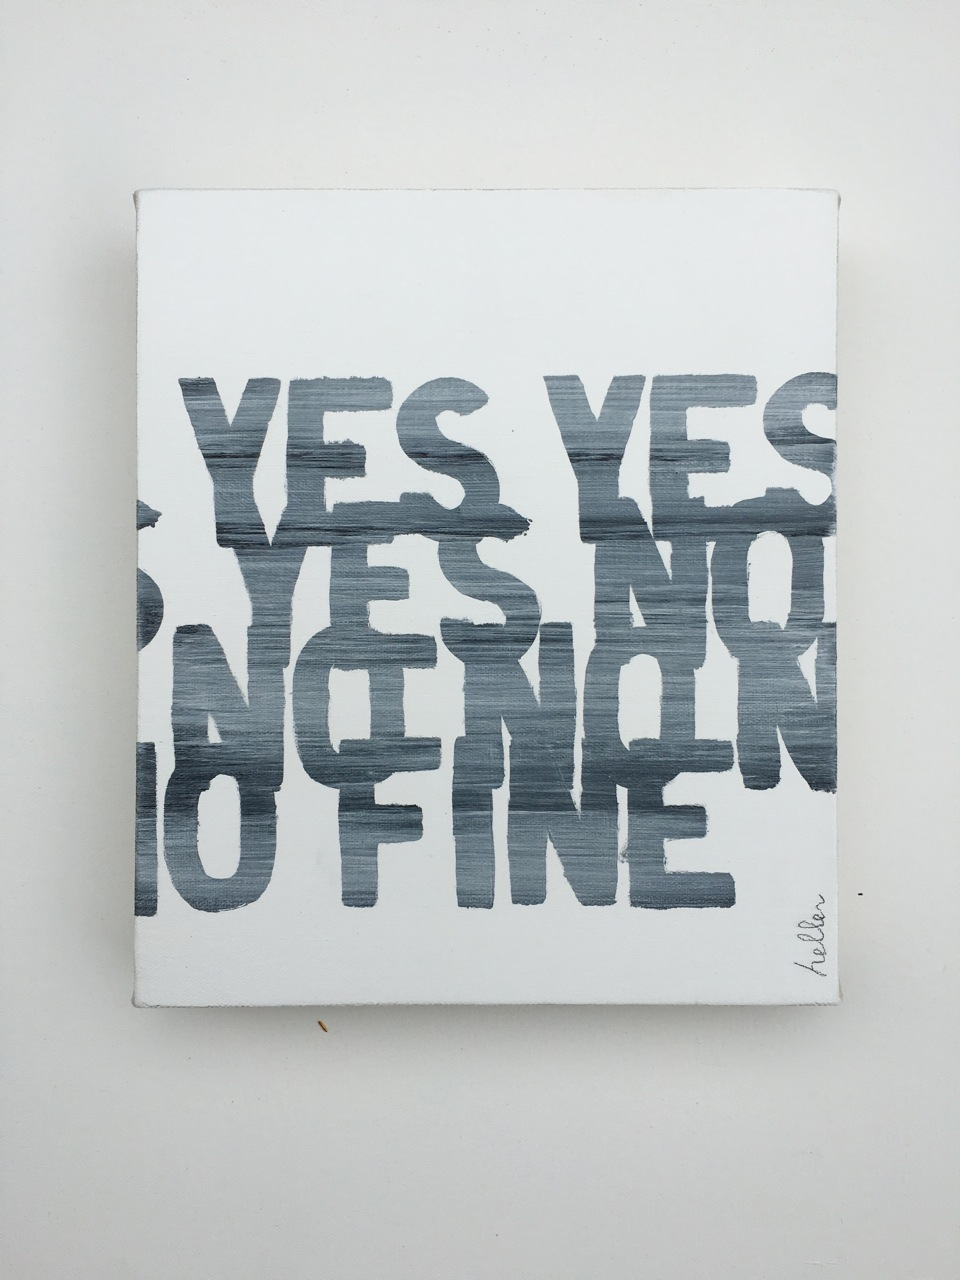 Matthew Heller  , Answers to Questions: Yes Yes Yes No No No No Fine,  2016, Acrylic on canvas, 11 x 9 1/2 inches